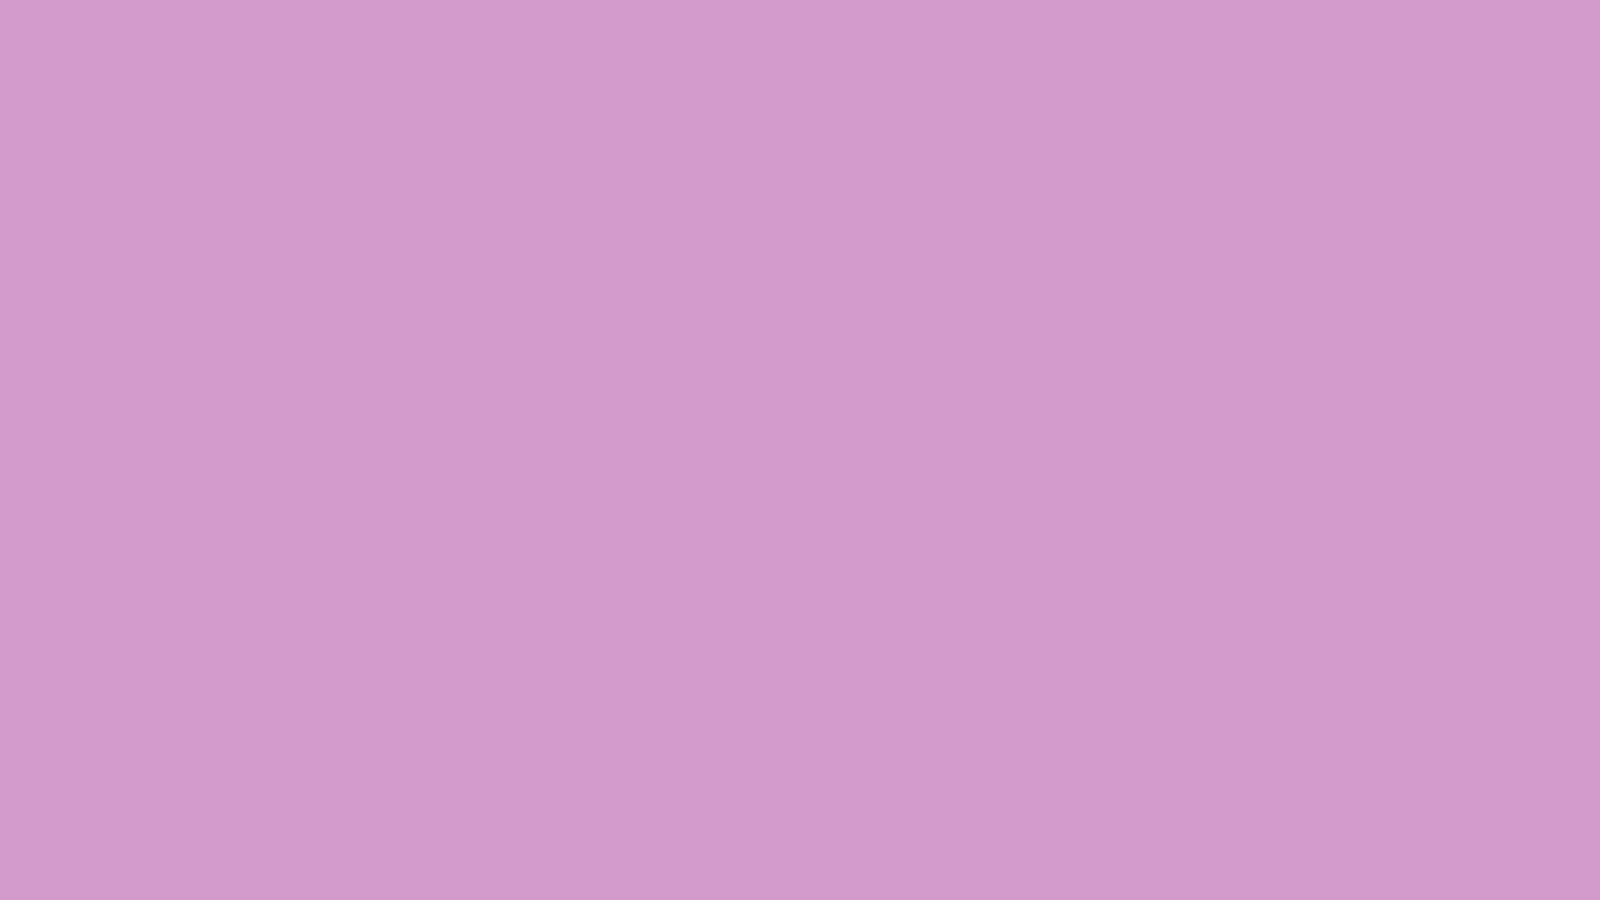 1600x900 Light Medium Orchid Solid Color Background